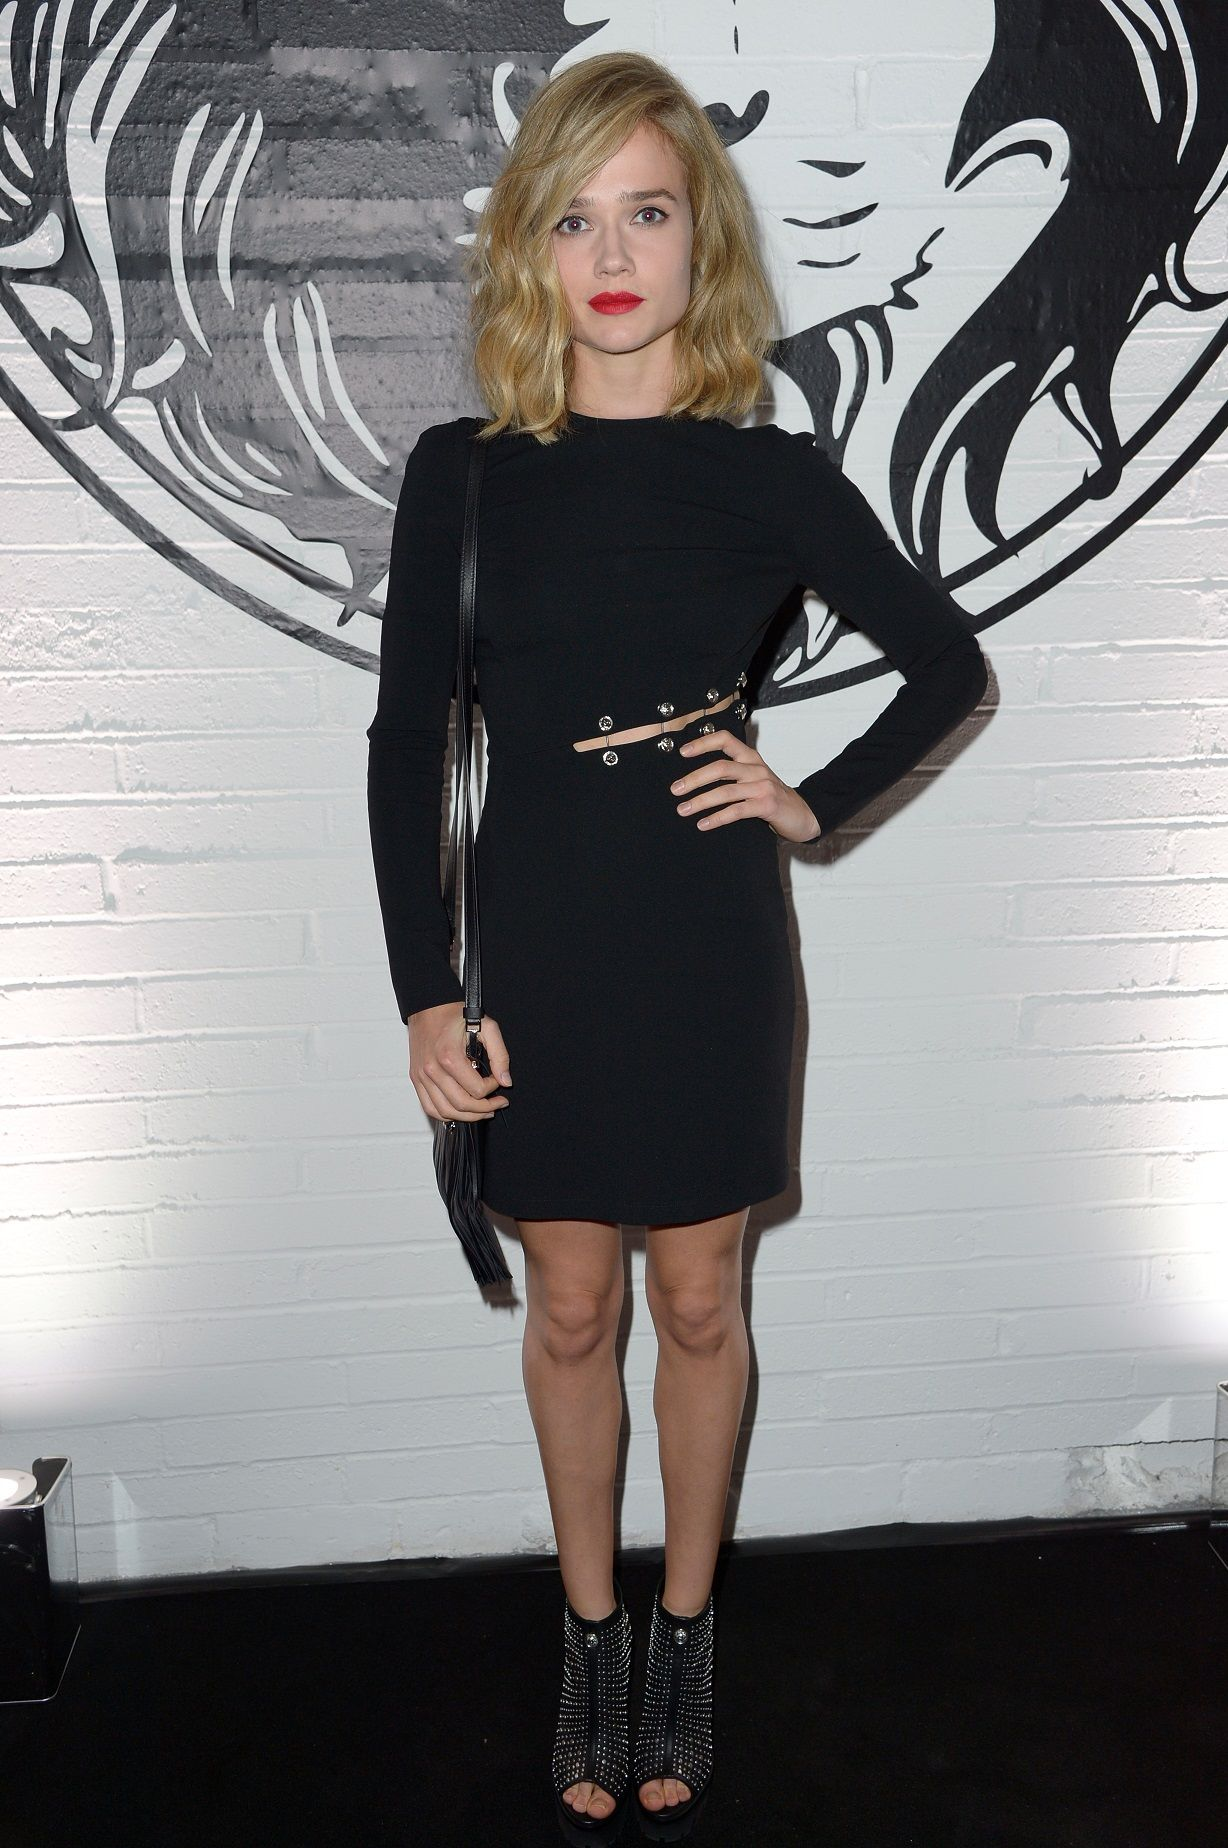 #VersusCelebrities - Florrie was flawless in a short leather #VersusVersace dress with Silver hardware. #VersusCalling